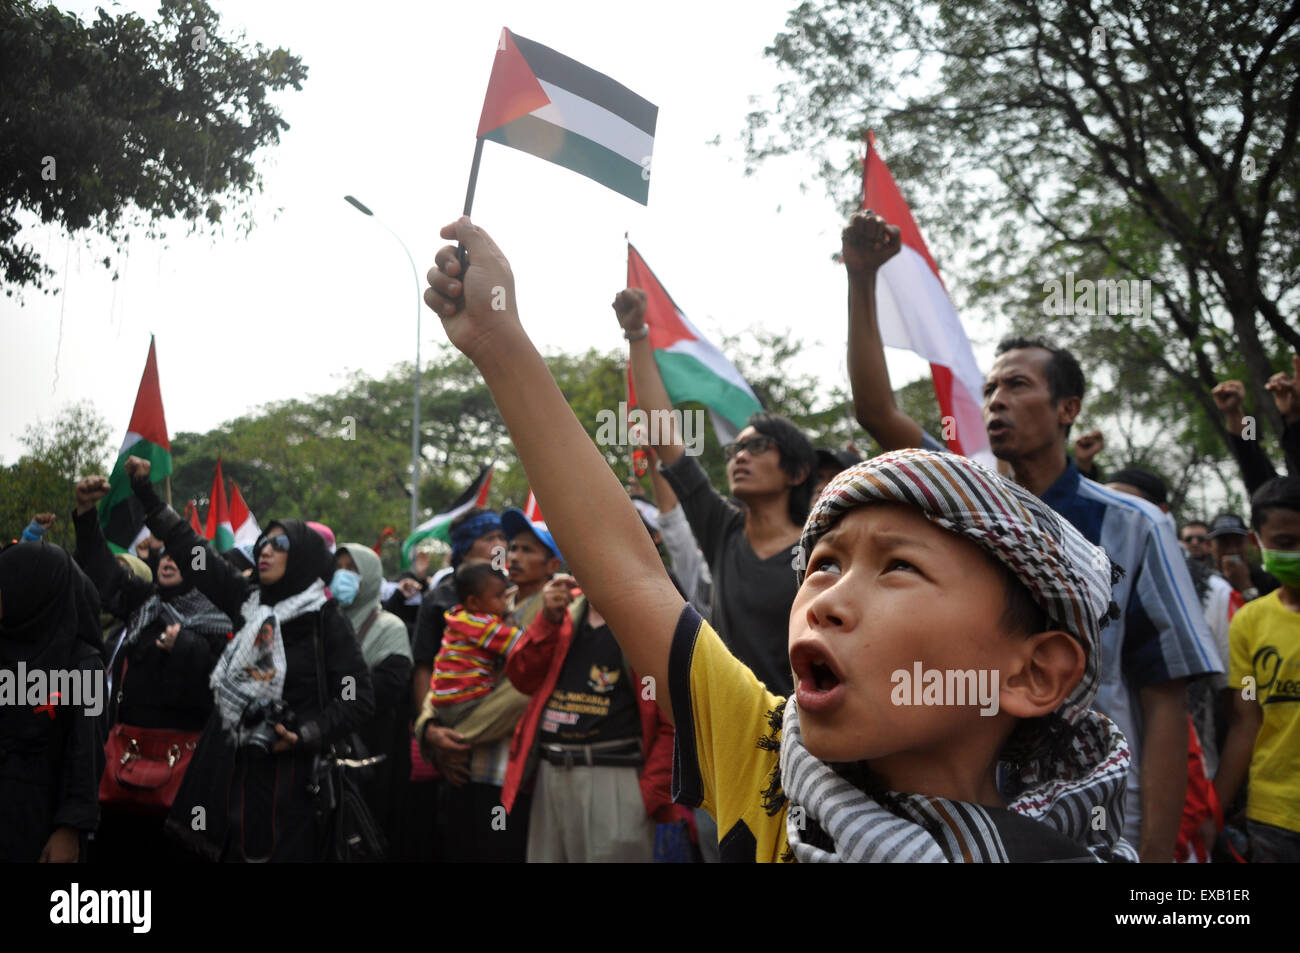 Jakarta, Indonesia. 10th July, 2015. Hundreds of Indonesian Muslims commemorate Al-Quds Day by demonstrating support - Stock Image